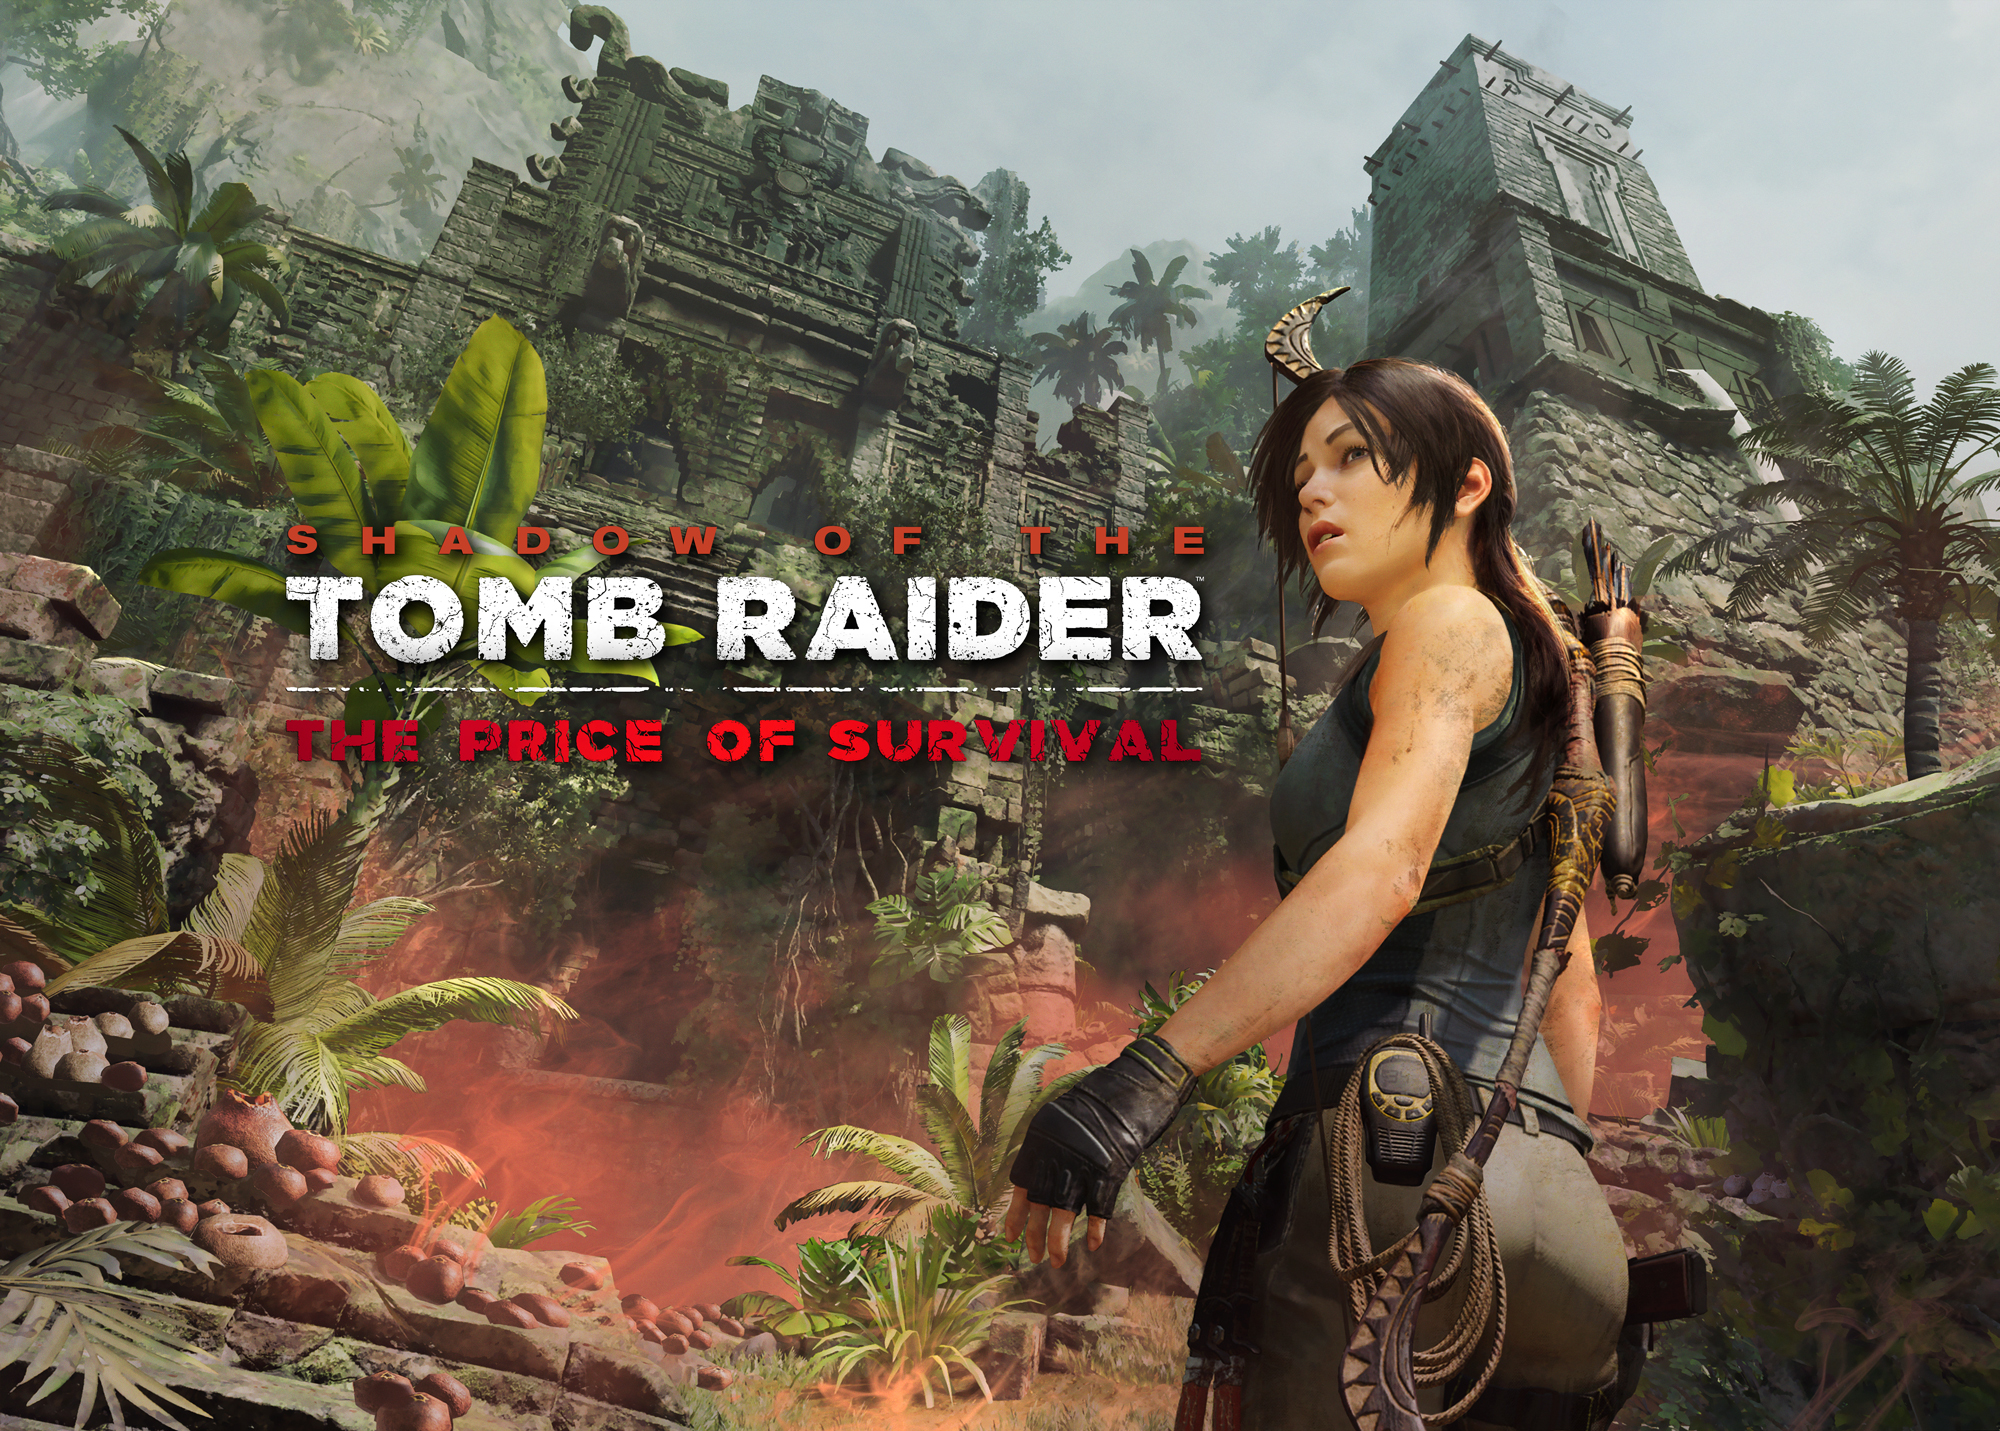 Shadow of the Tomb Raider - The Price of Survival